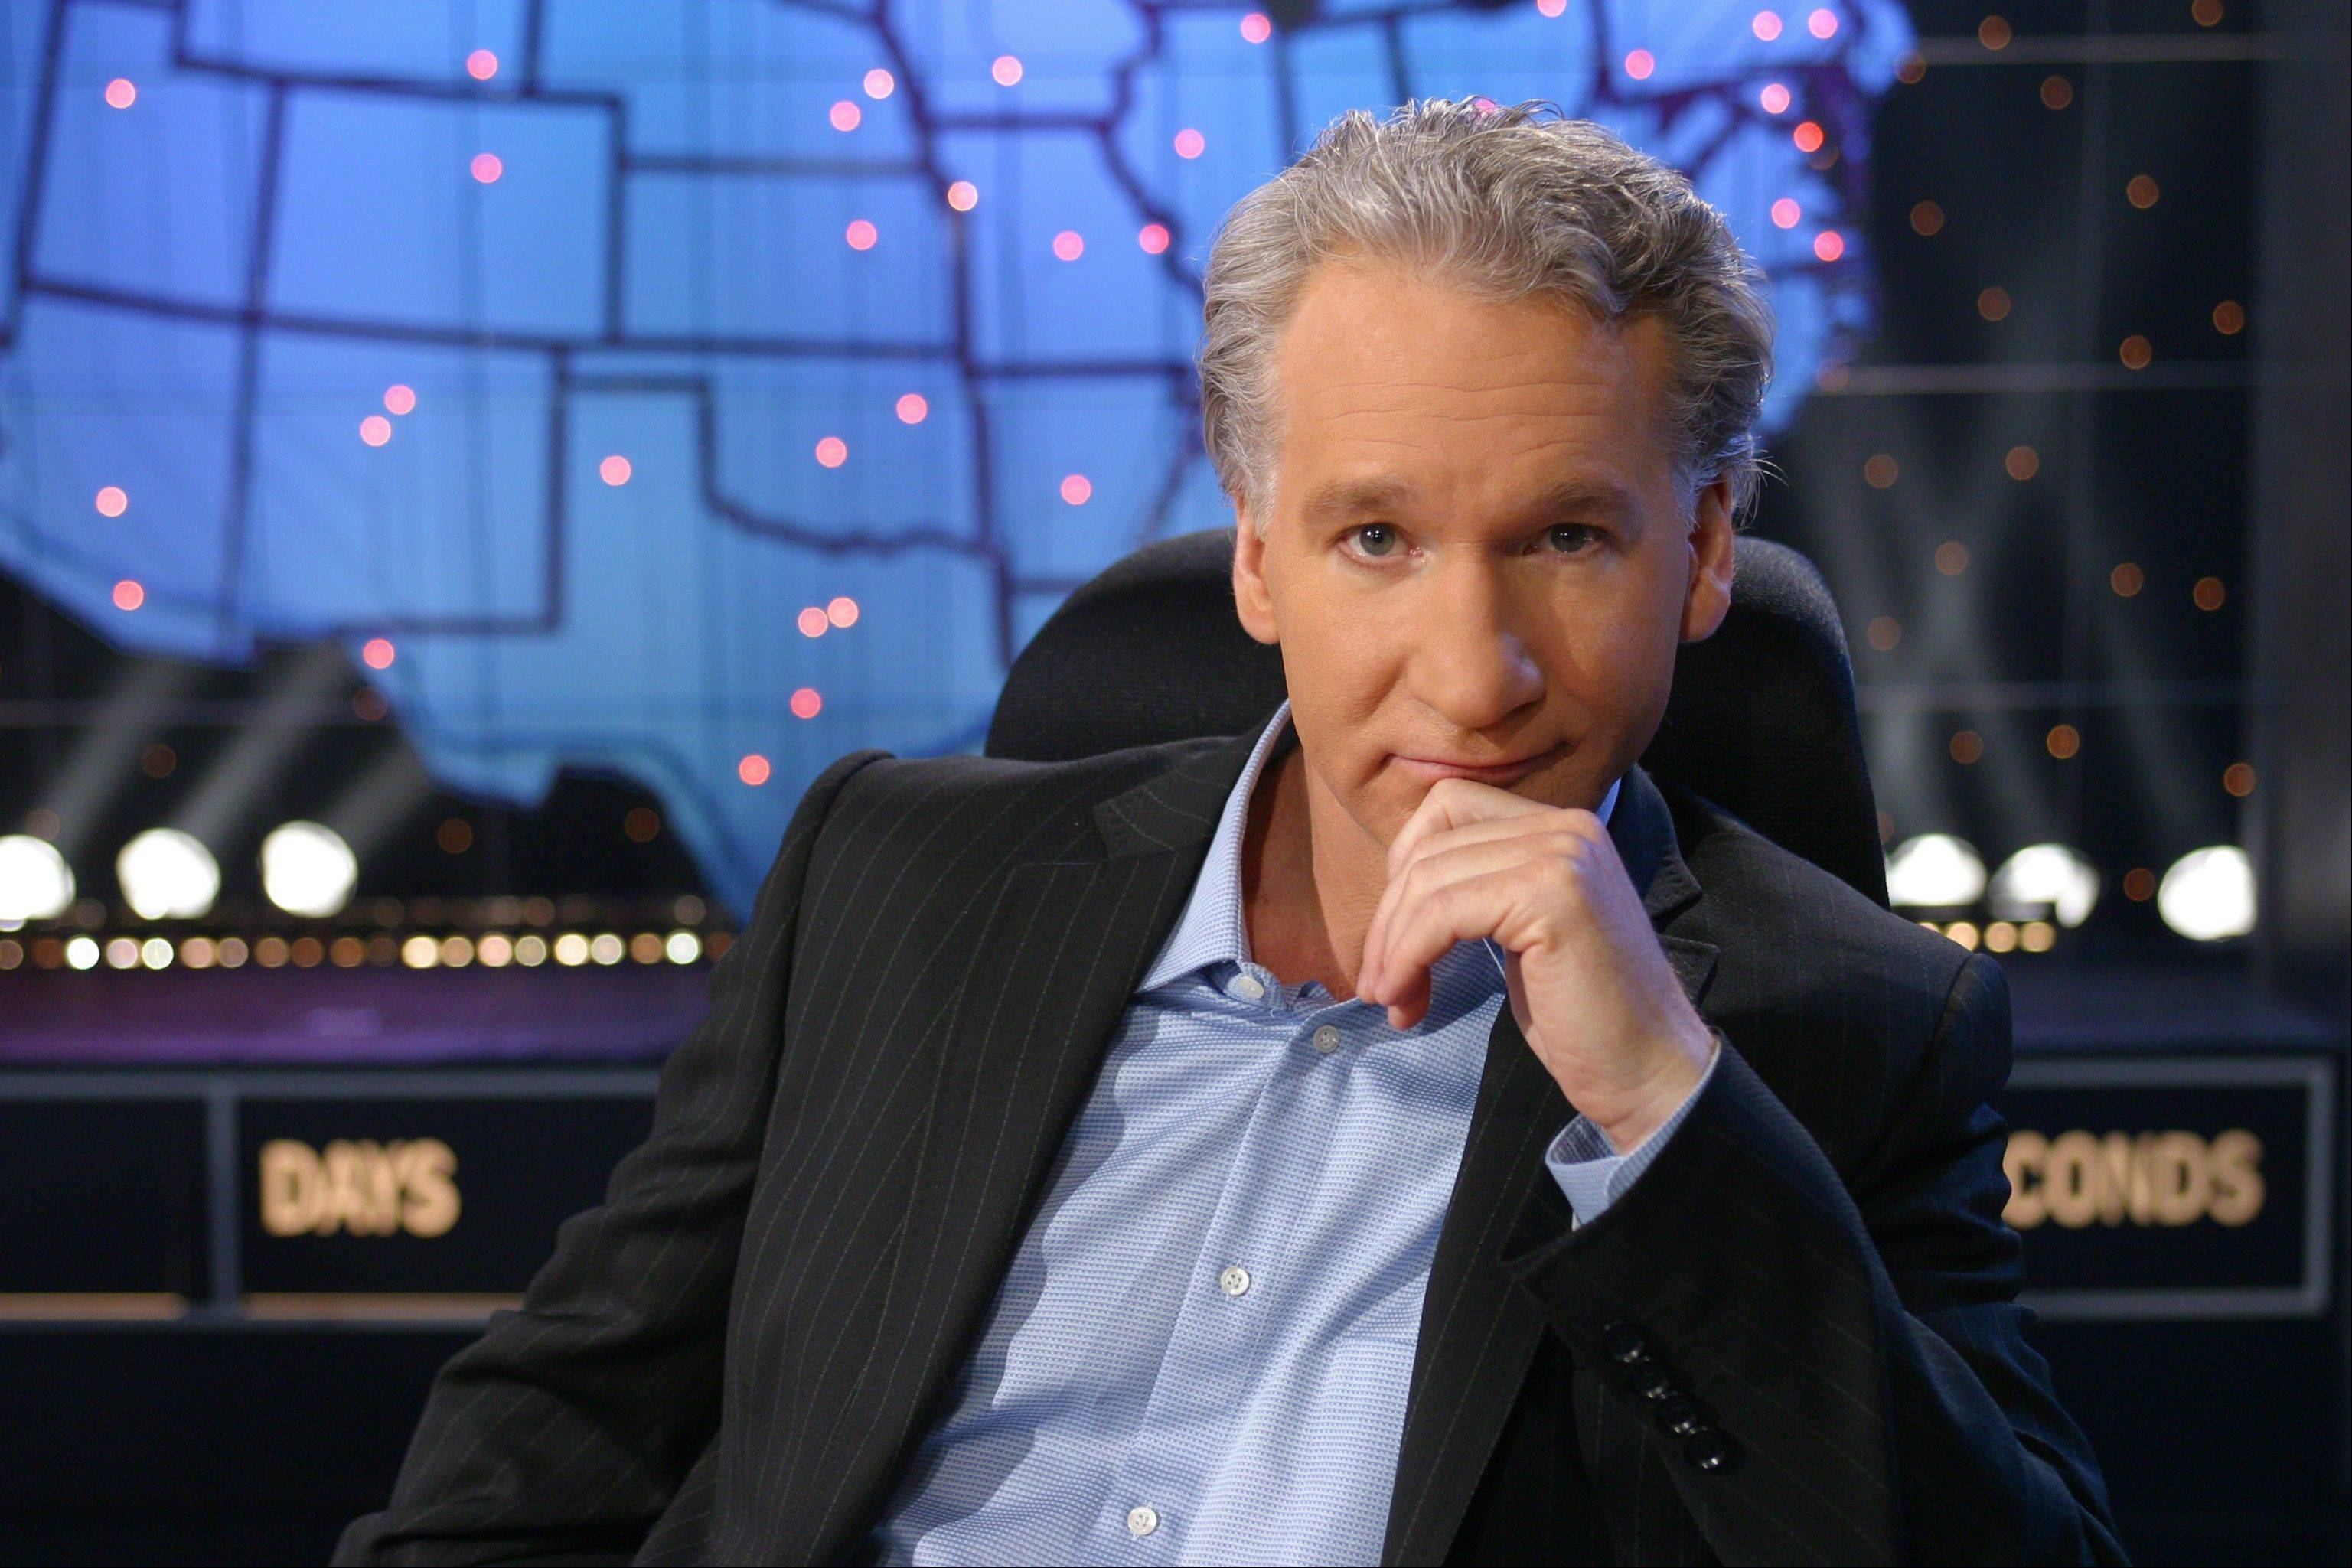 Bill Maher gives his political perspective at Waukegan's Genesee Theatre on Sunday, Oct. 14.